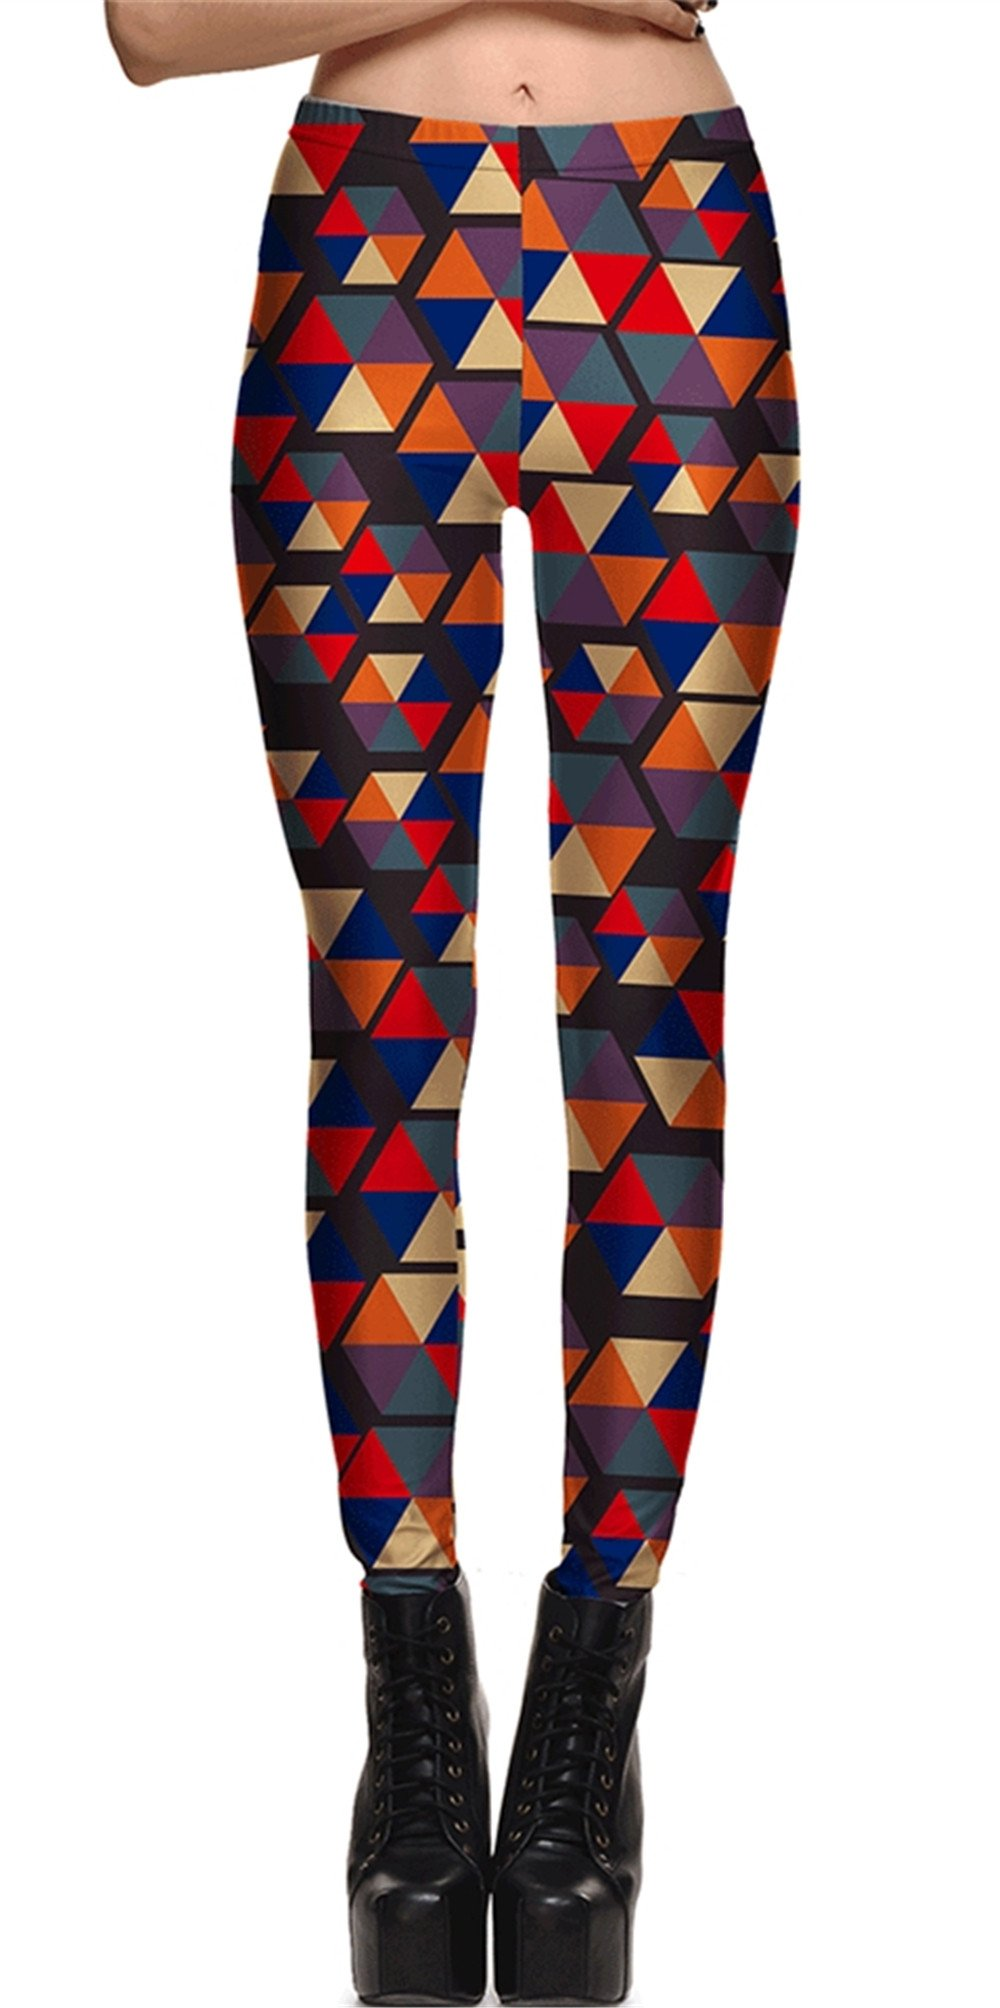 Hoyou Funky Print Leggings For Women Galaxy Floral Tribal Sexy Smooth Crazy Patterned Pants Slimming Girls Rectangle S